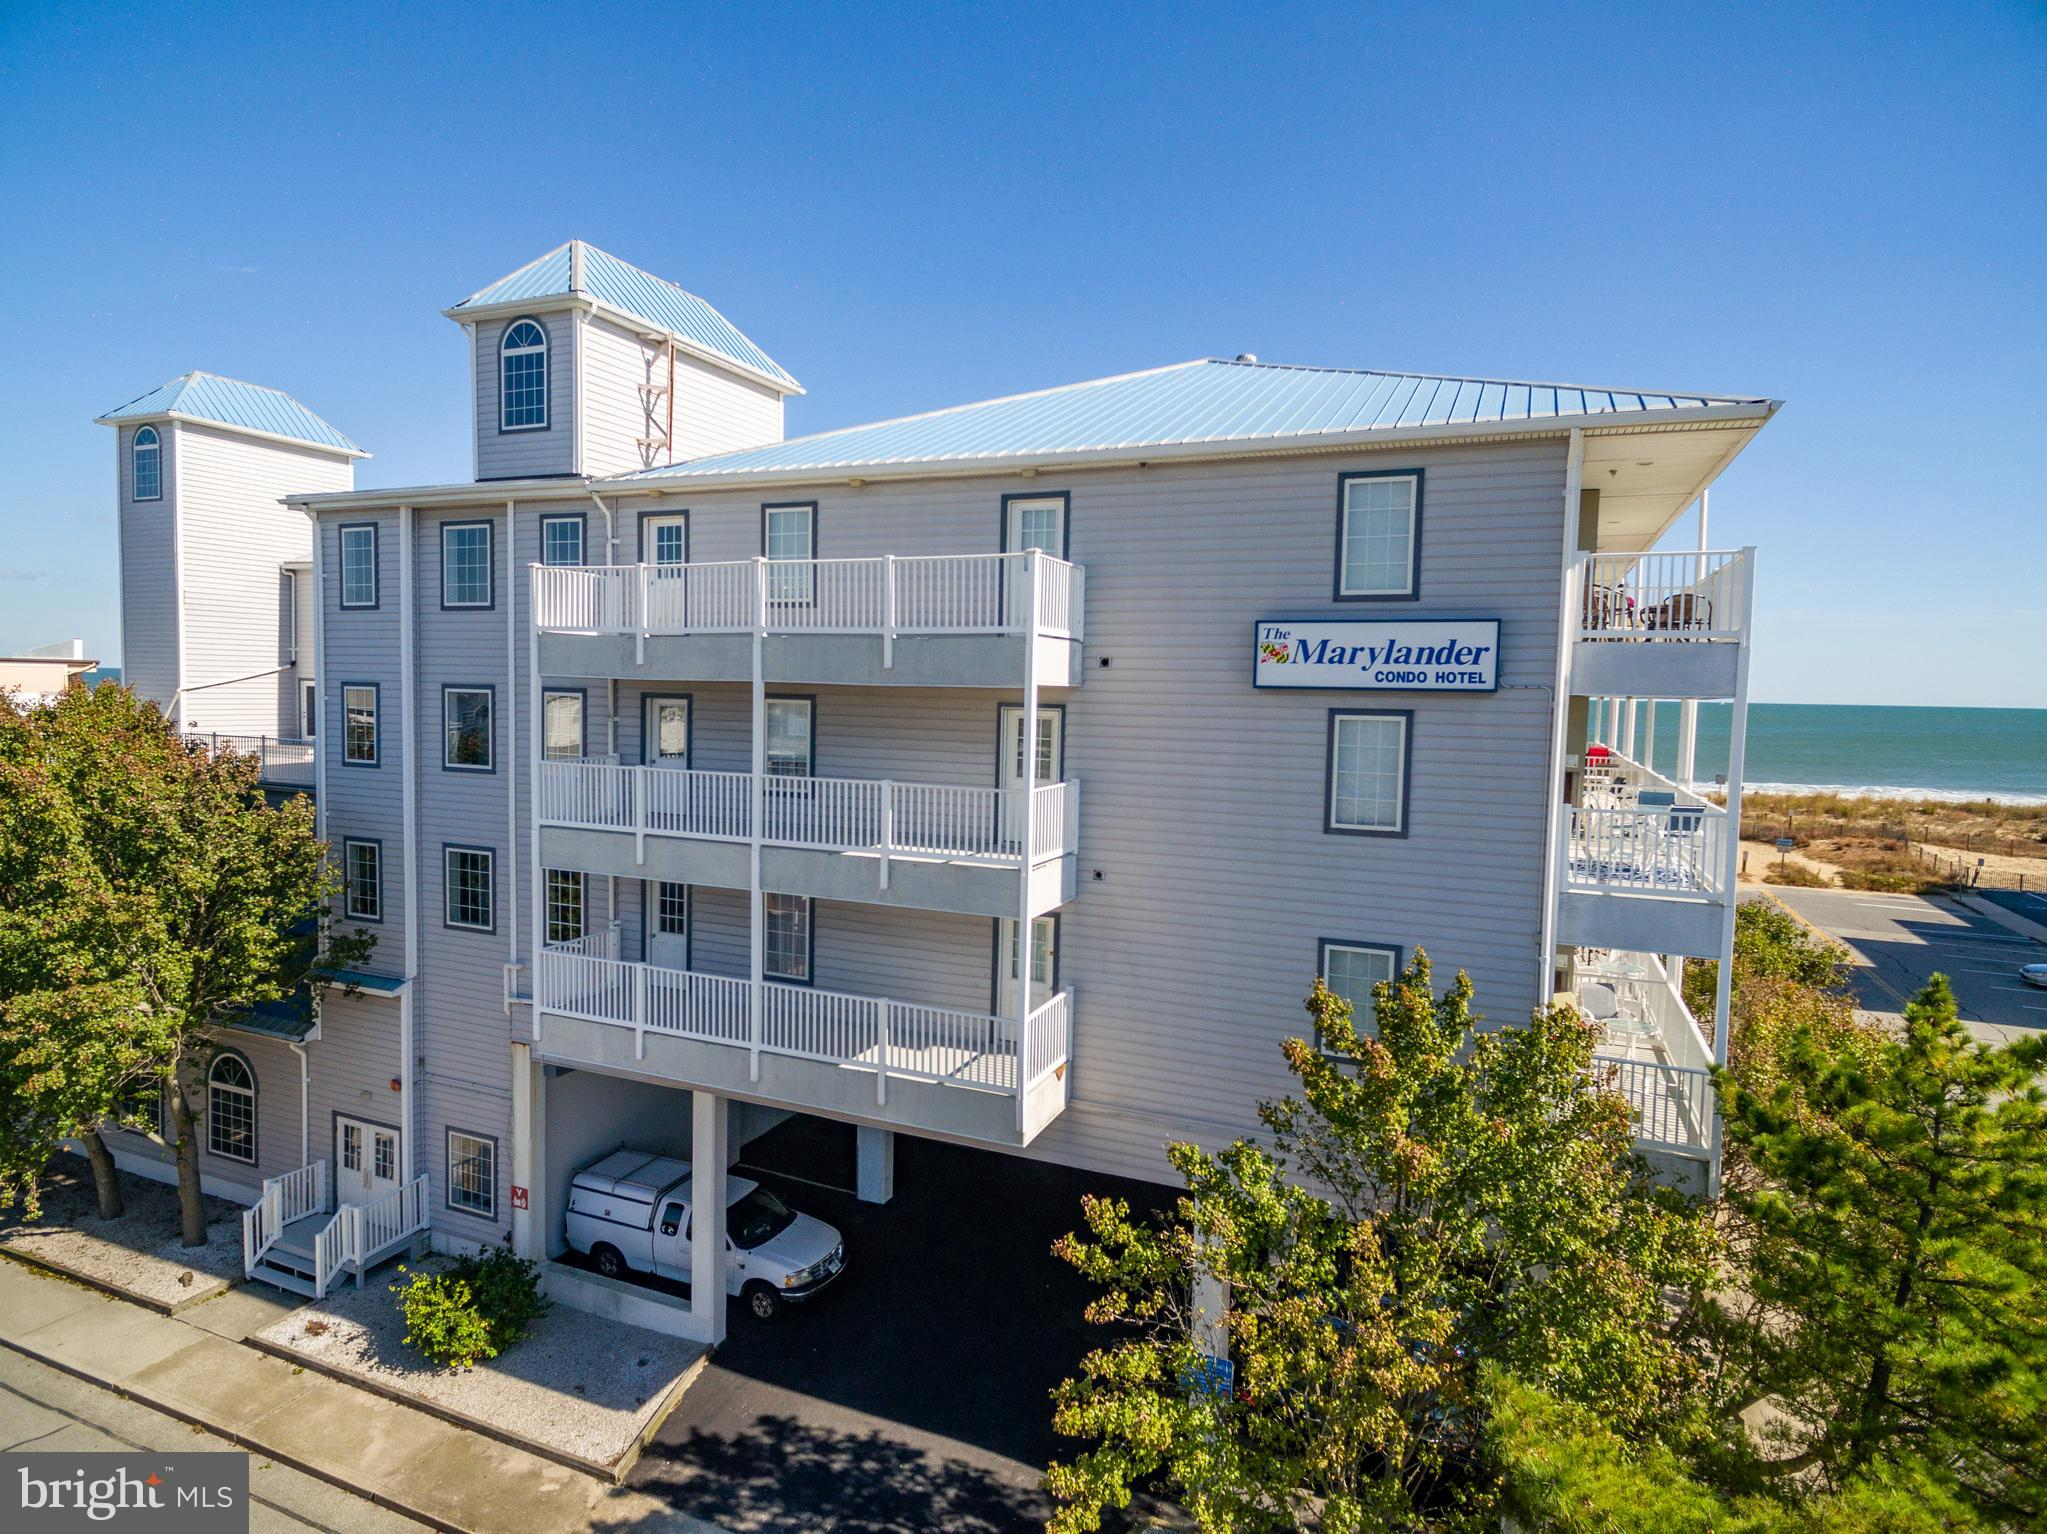 6 127th St #307, MARYLANDER, Ocean City, MD, 21842